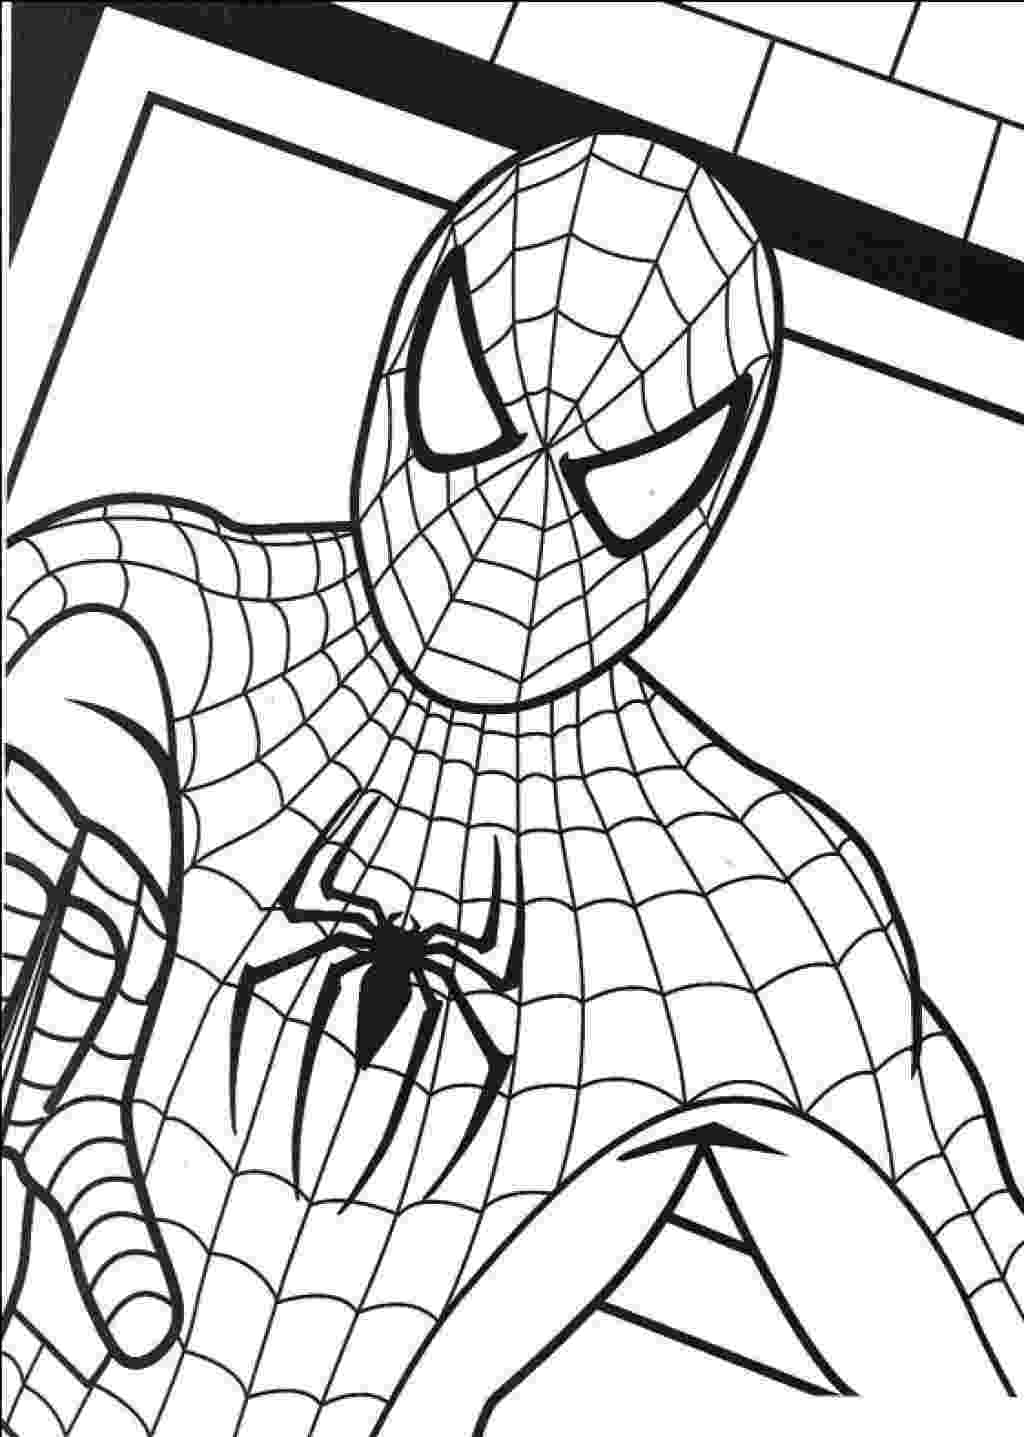 spiderman picture to color spider man coloring pages print and colorcom spiderman picture to color